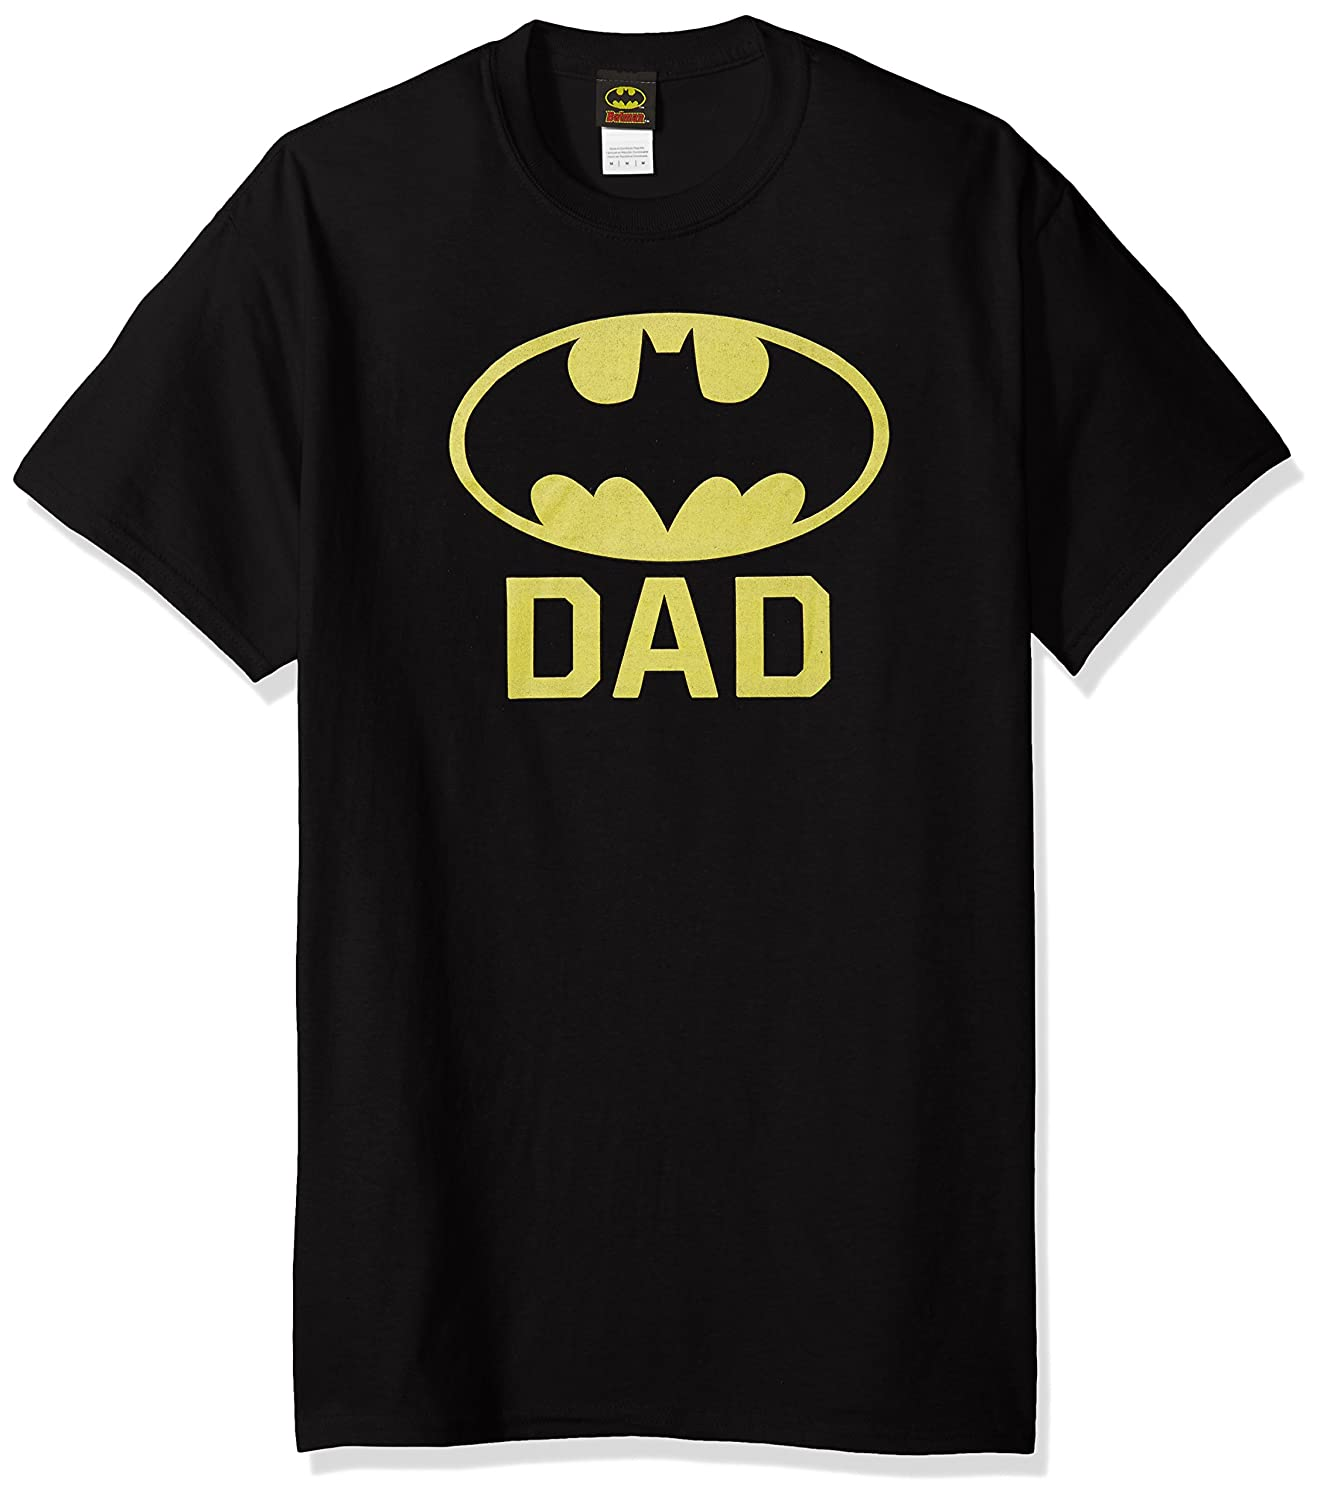 DC Comics Mens Batman Bat Dad T-Shirt Trevco Child Code BM2606-AT